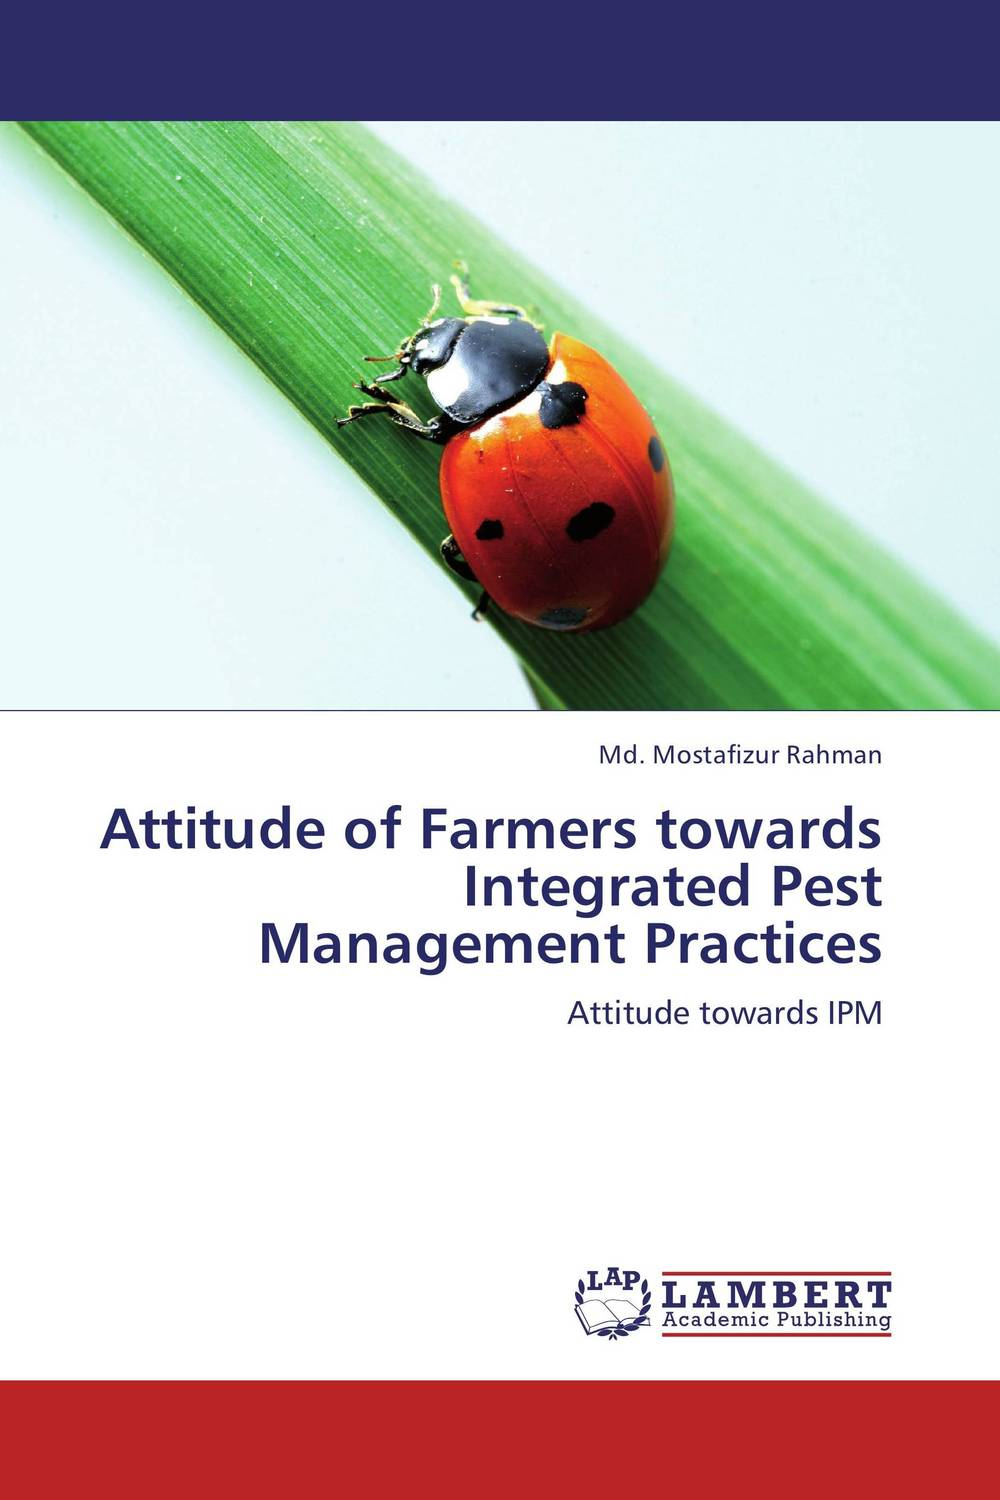 Attitude of Farmers towards Integrated Pest Management Practices farmers attitude